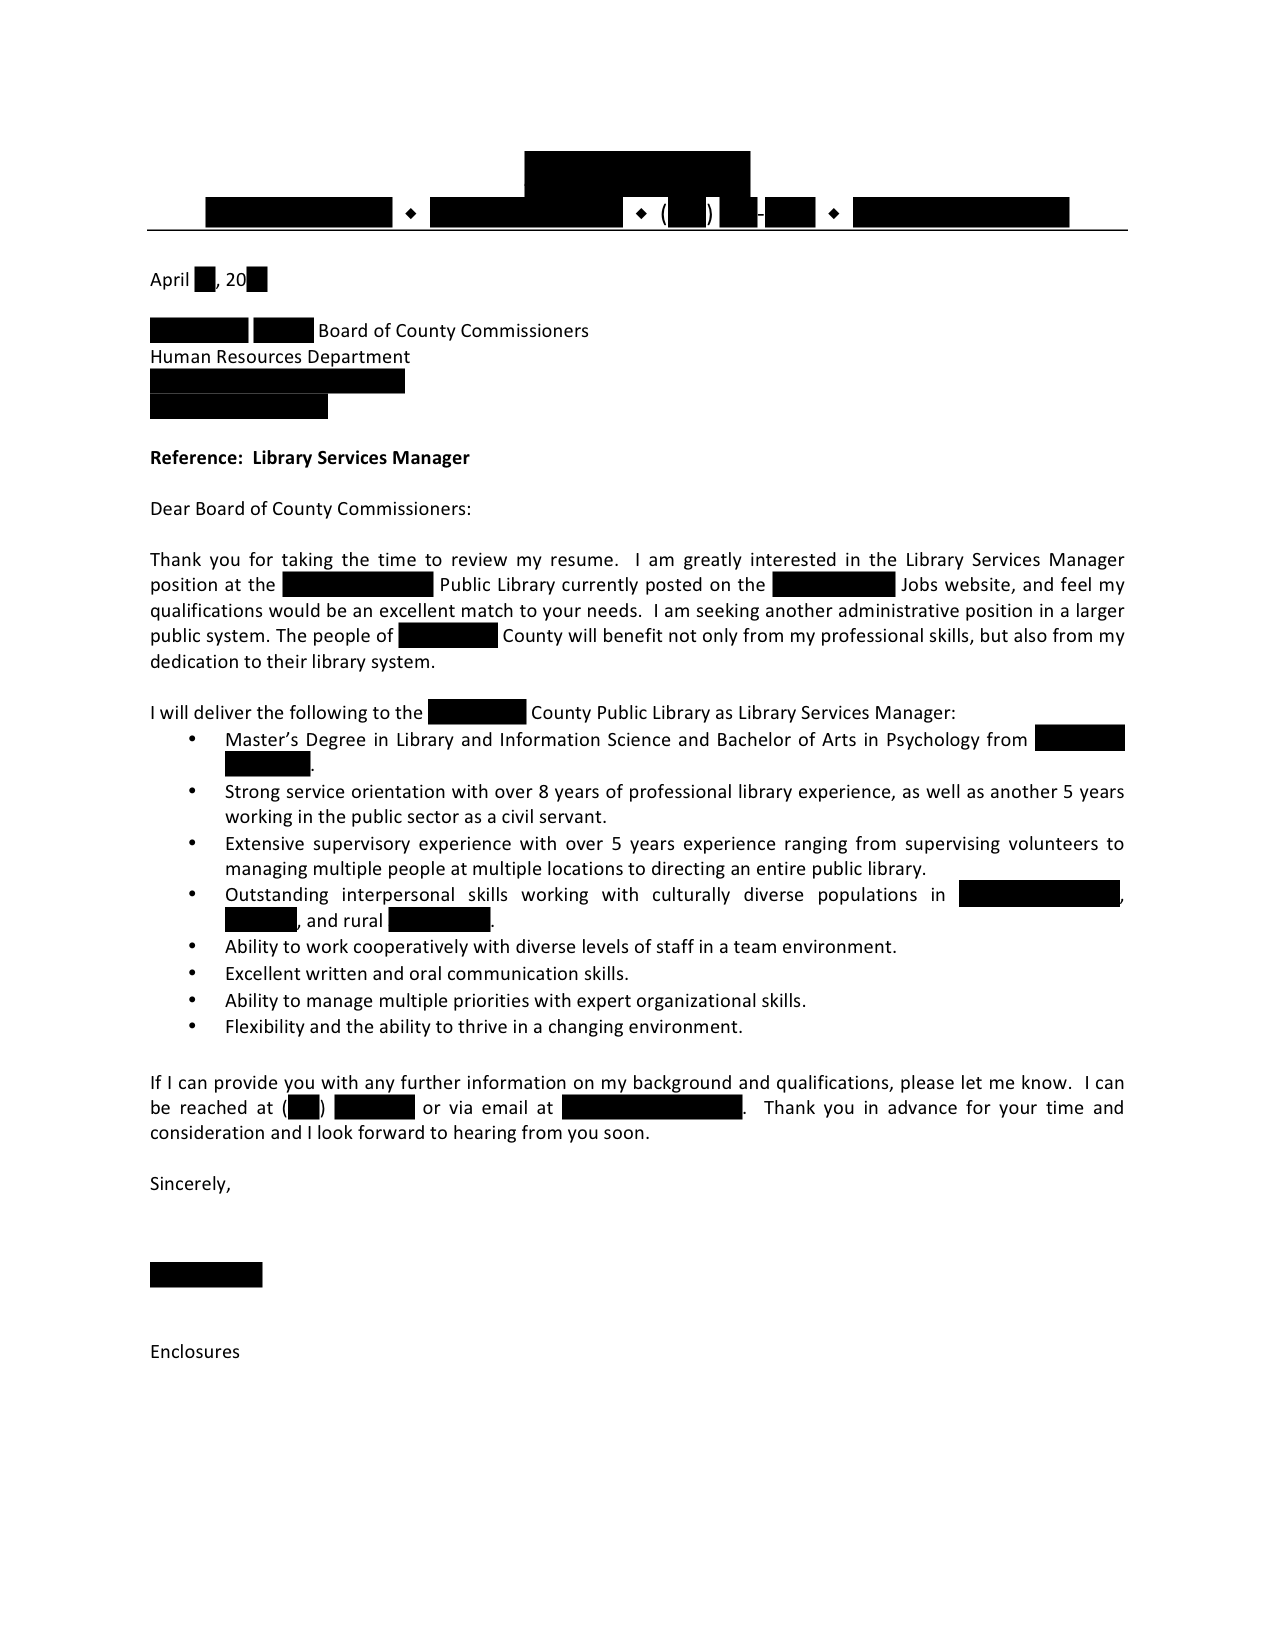 Library services manager cover letter open cover letters advertisements madrichimfo Choice Image